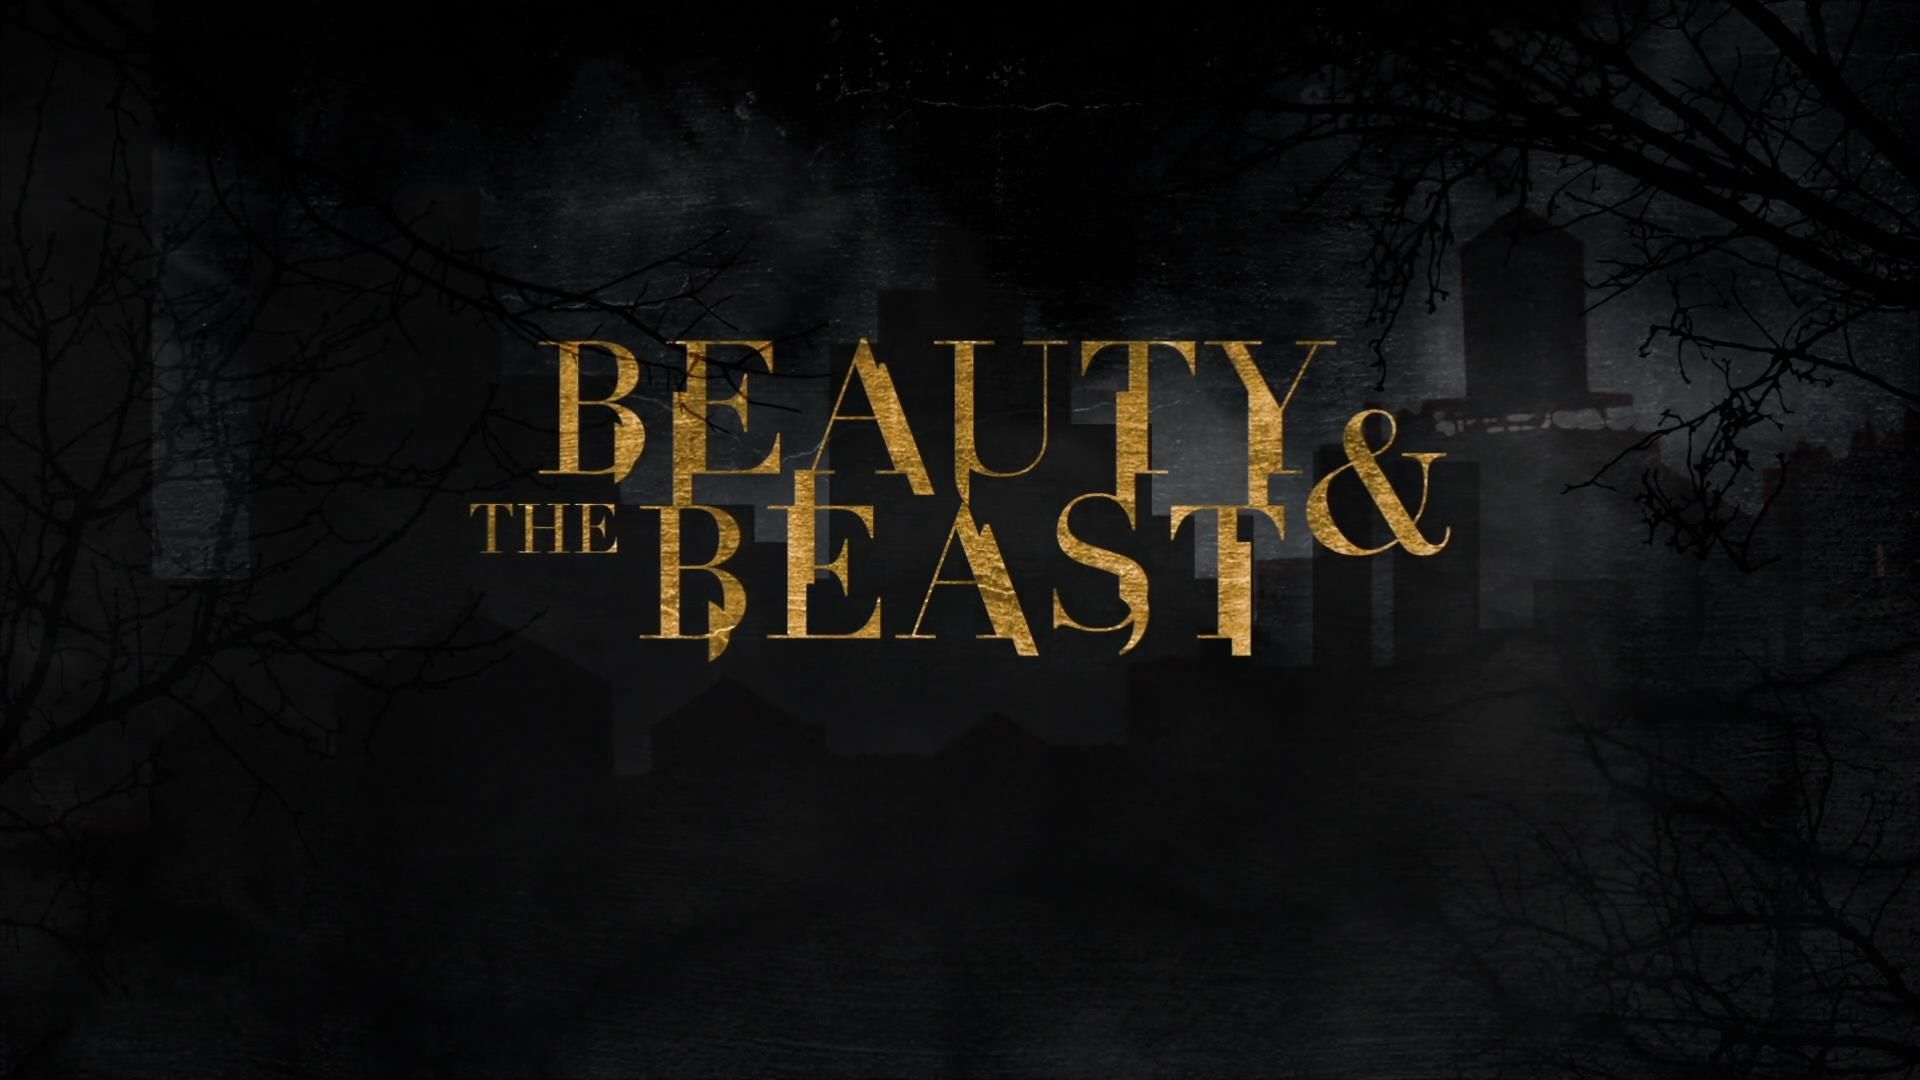 Beauty and the Beast wallpaper 3